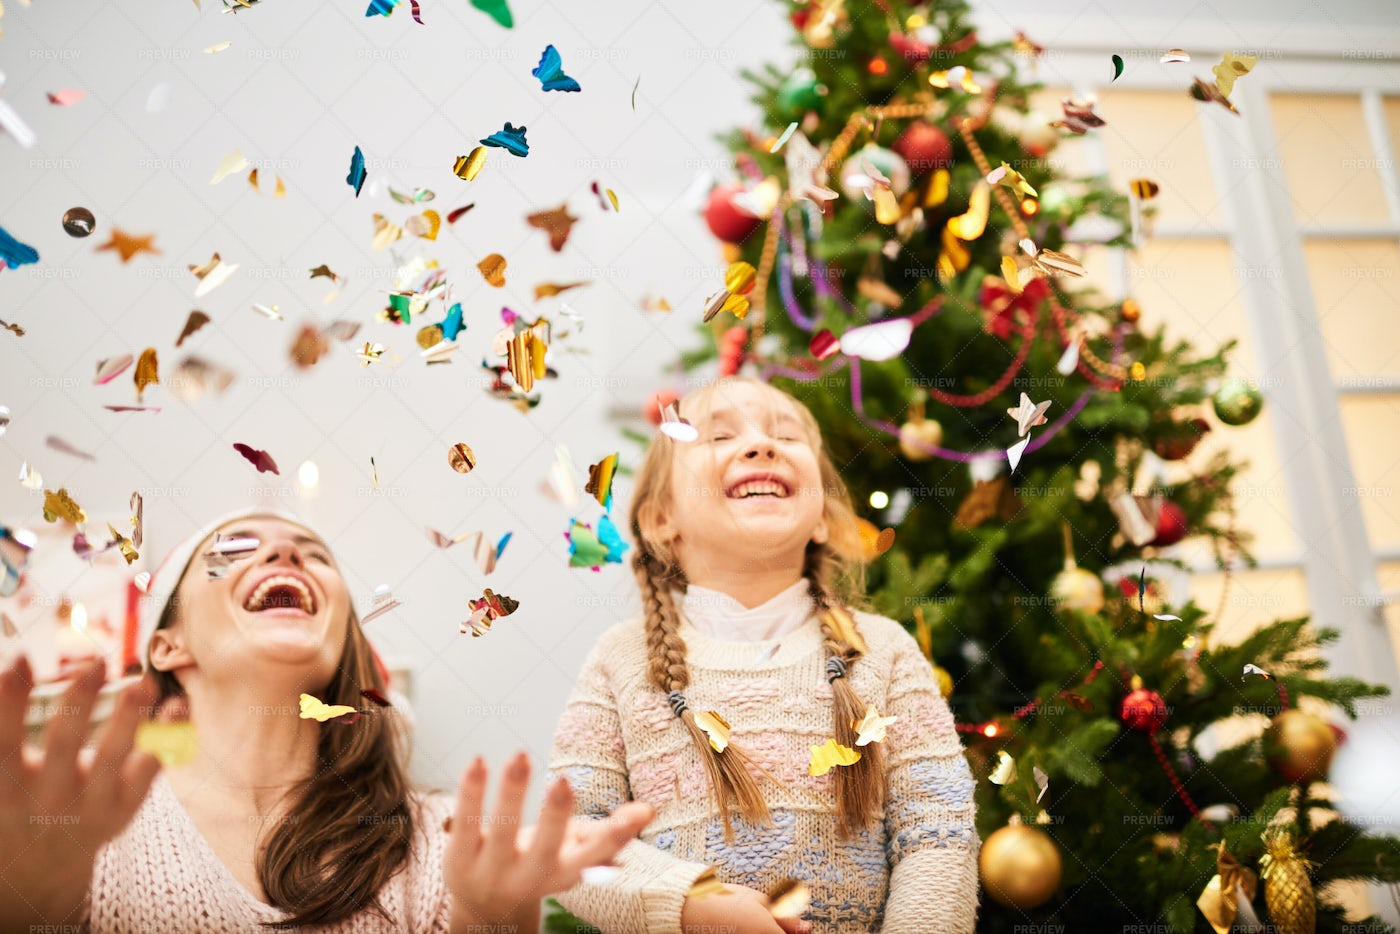 Celebrating Christmas With Little...: Stock Photos